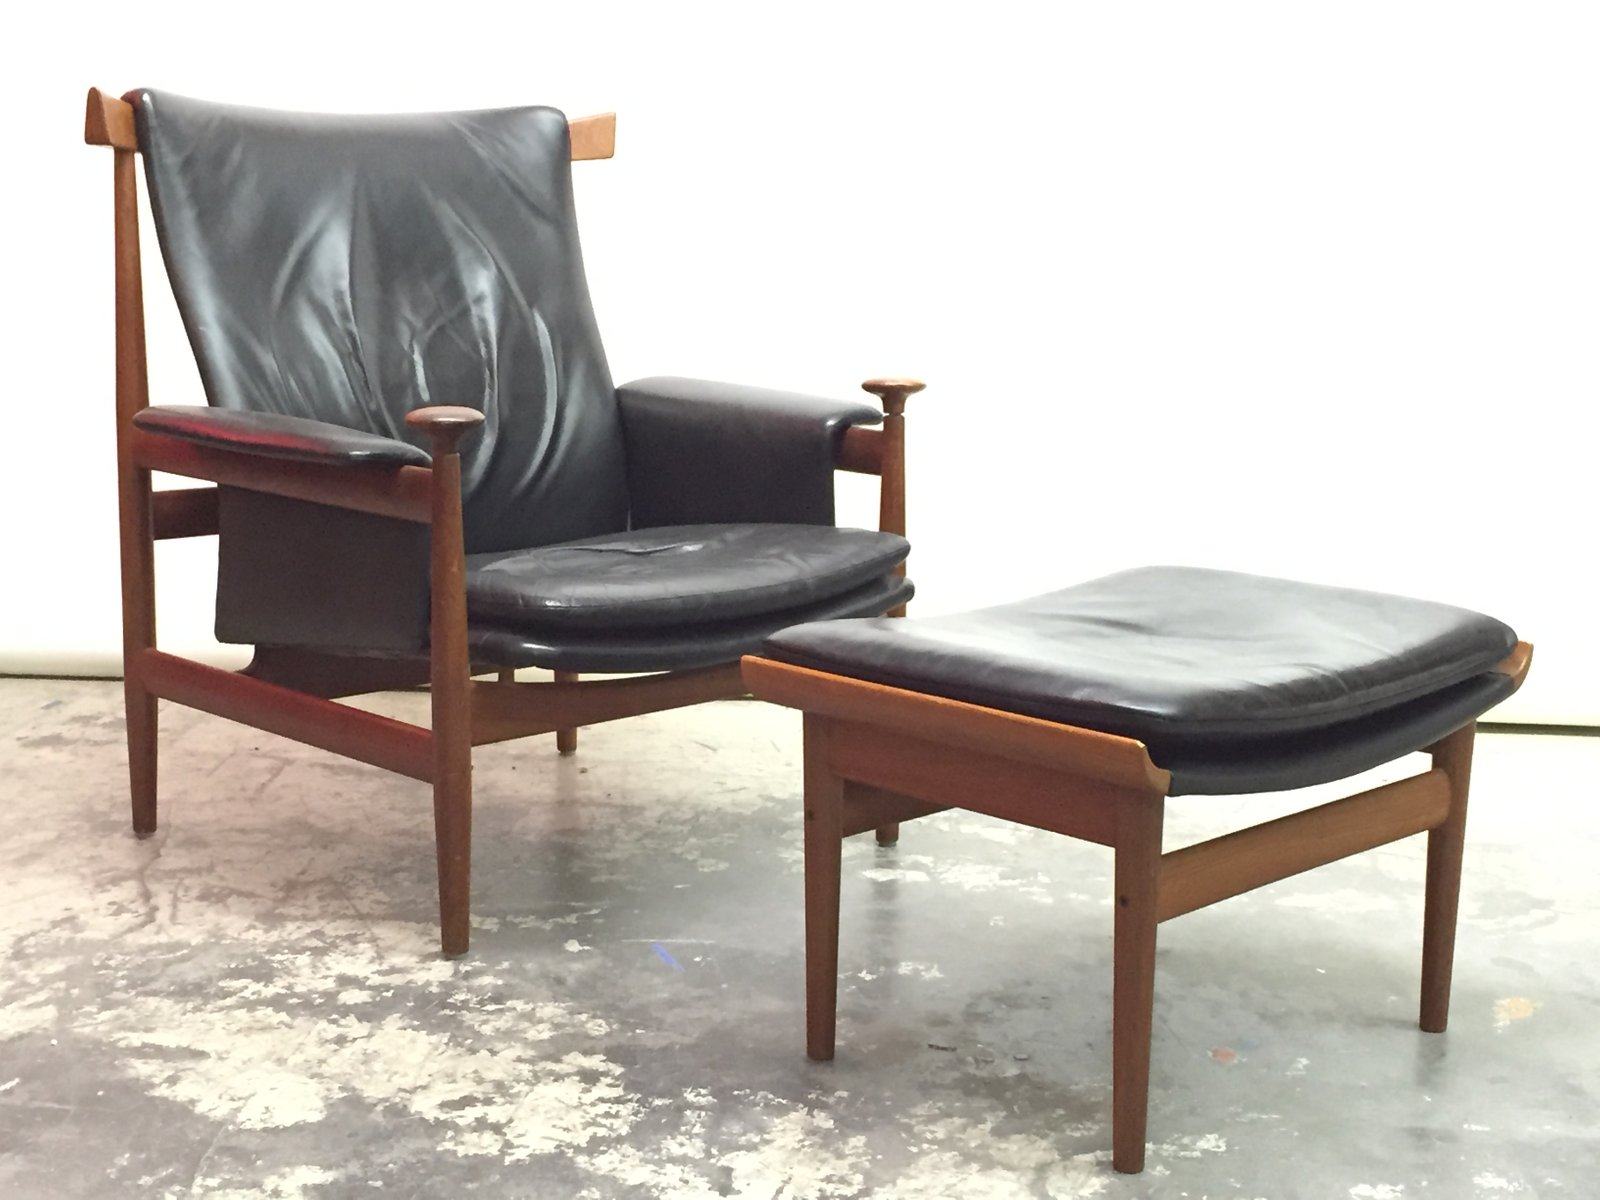 Danish Bwana Chair With Ottoman By Finn Juhl For France U0026 Son, 1960s, Set  Of 2 For Sale At Pamono